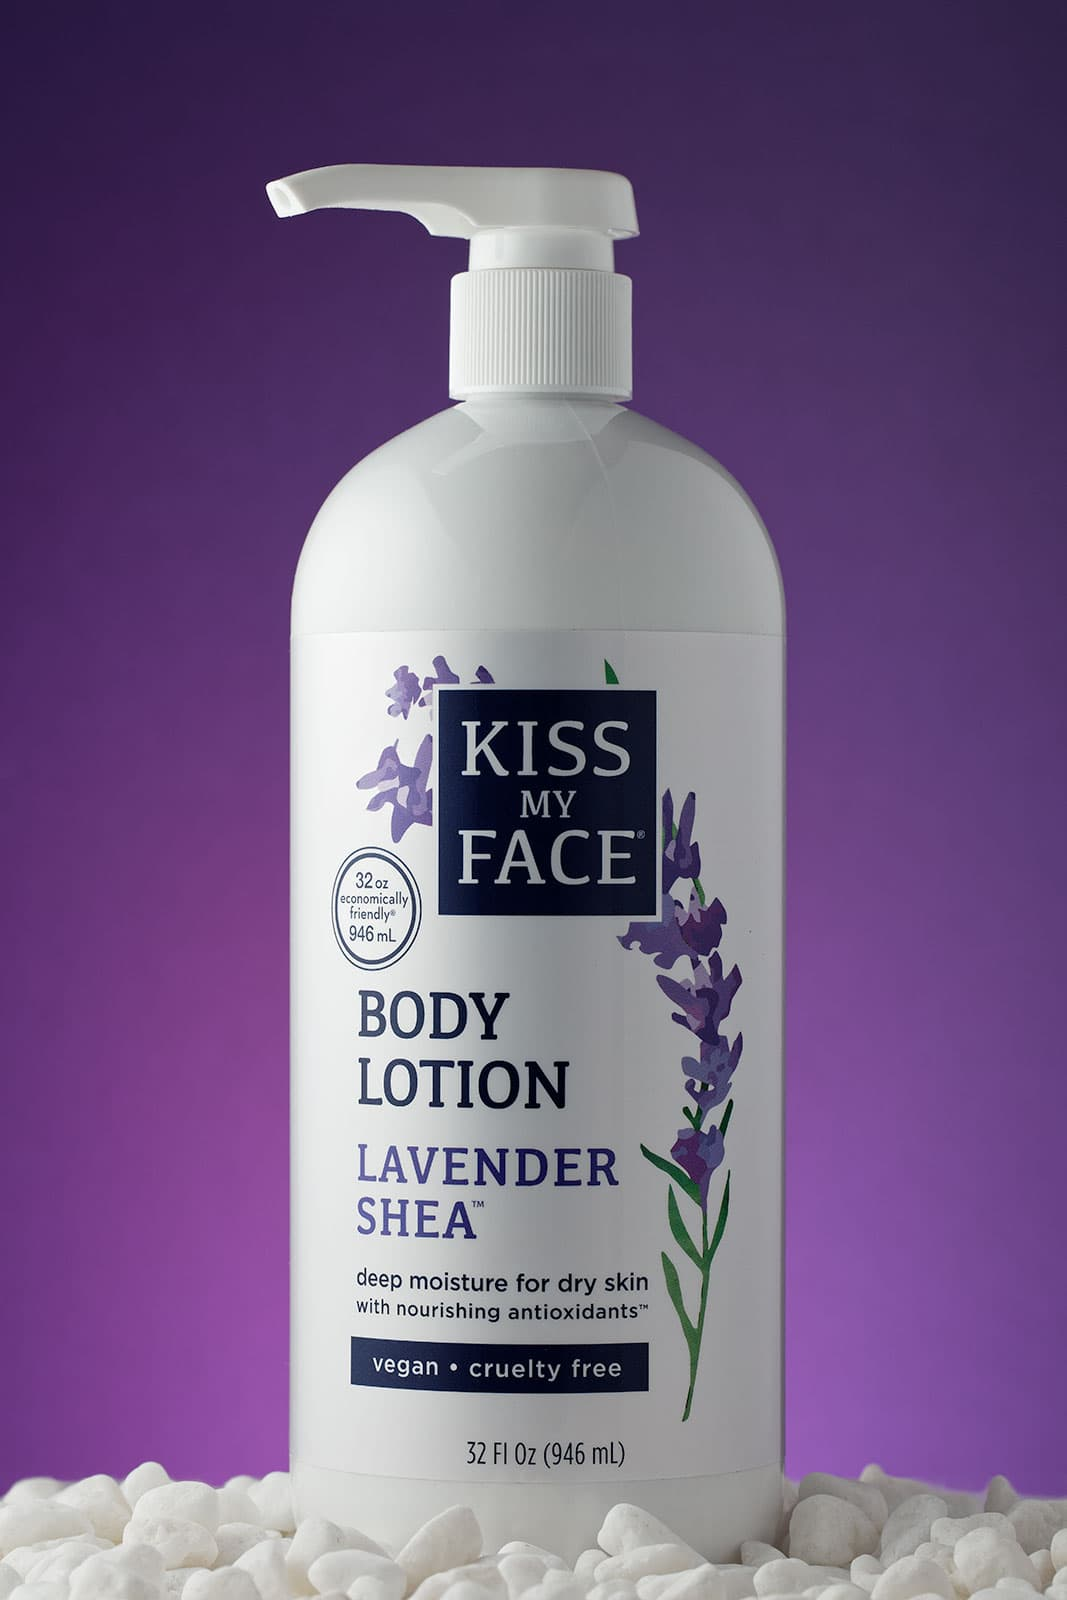 Kiss-My-Face-Body-Lotion-Lavender-Shea